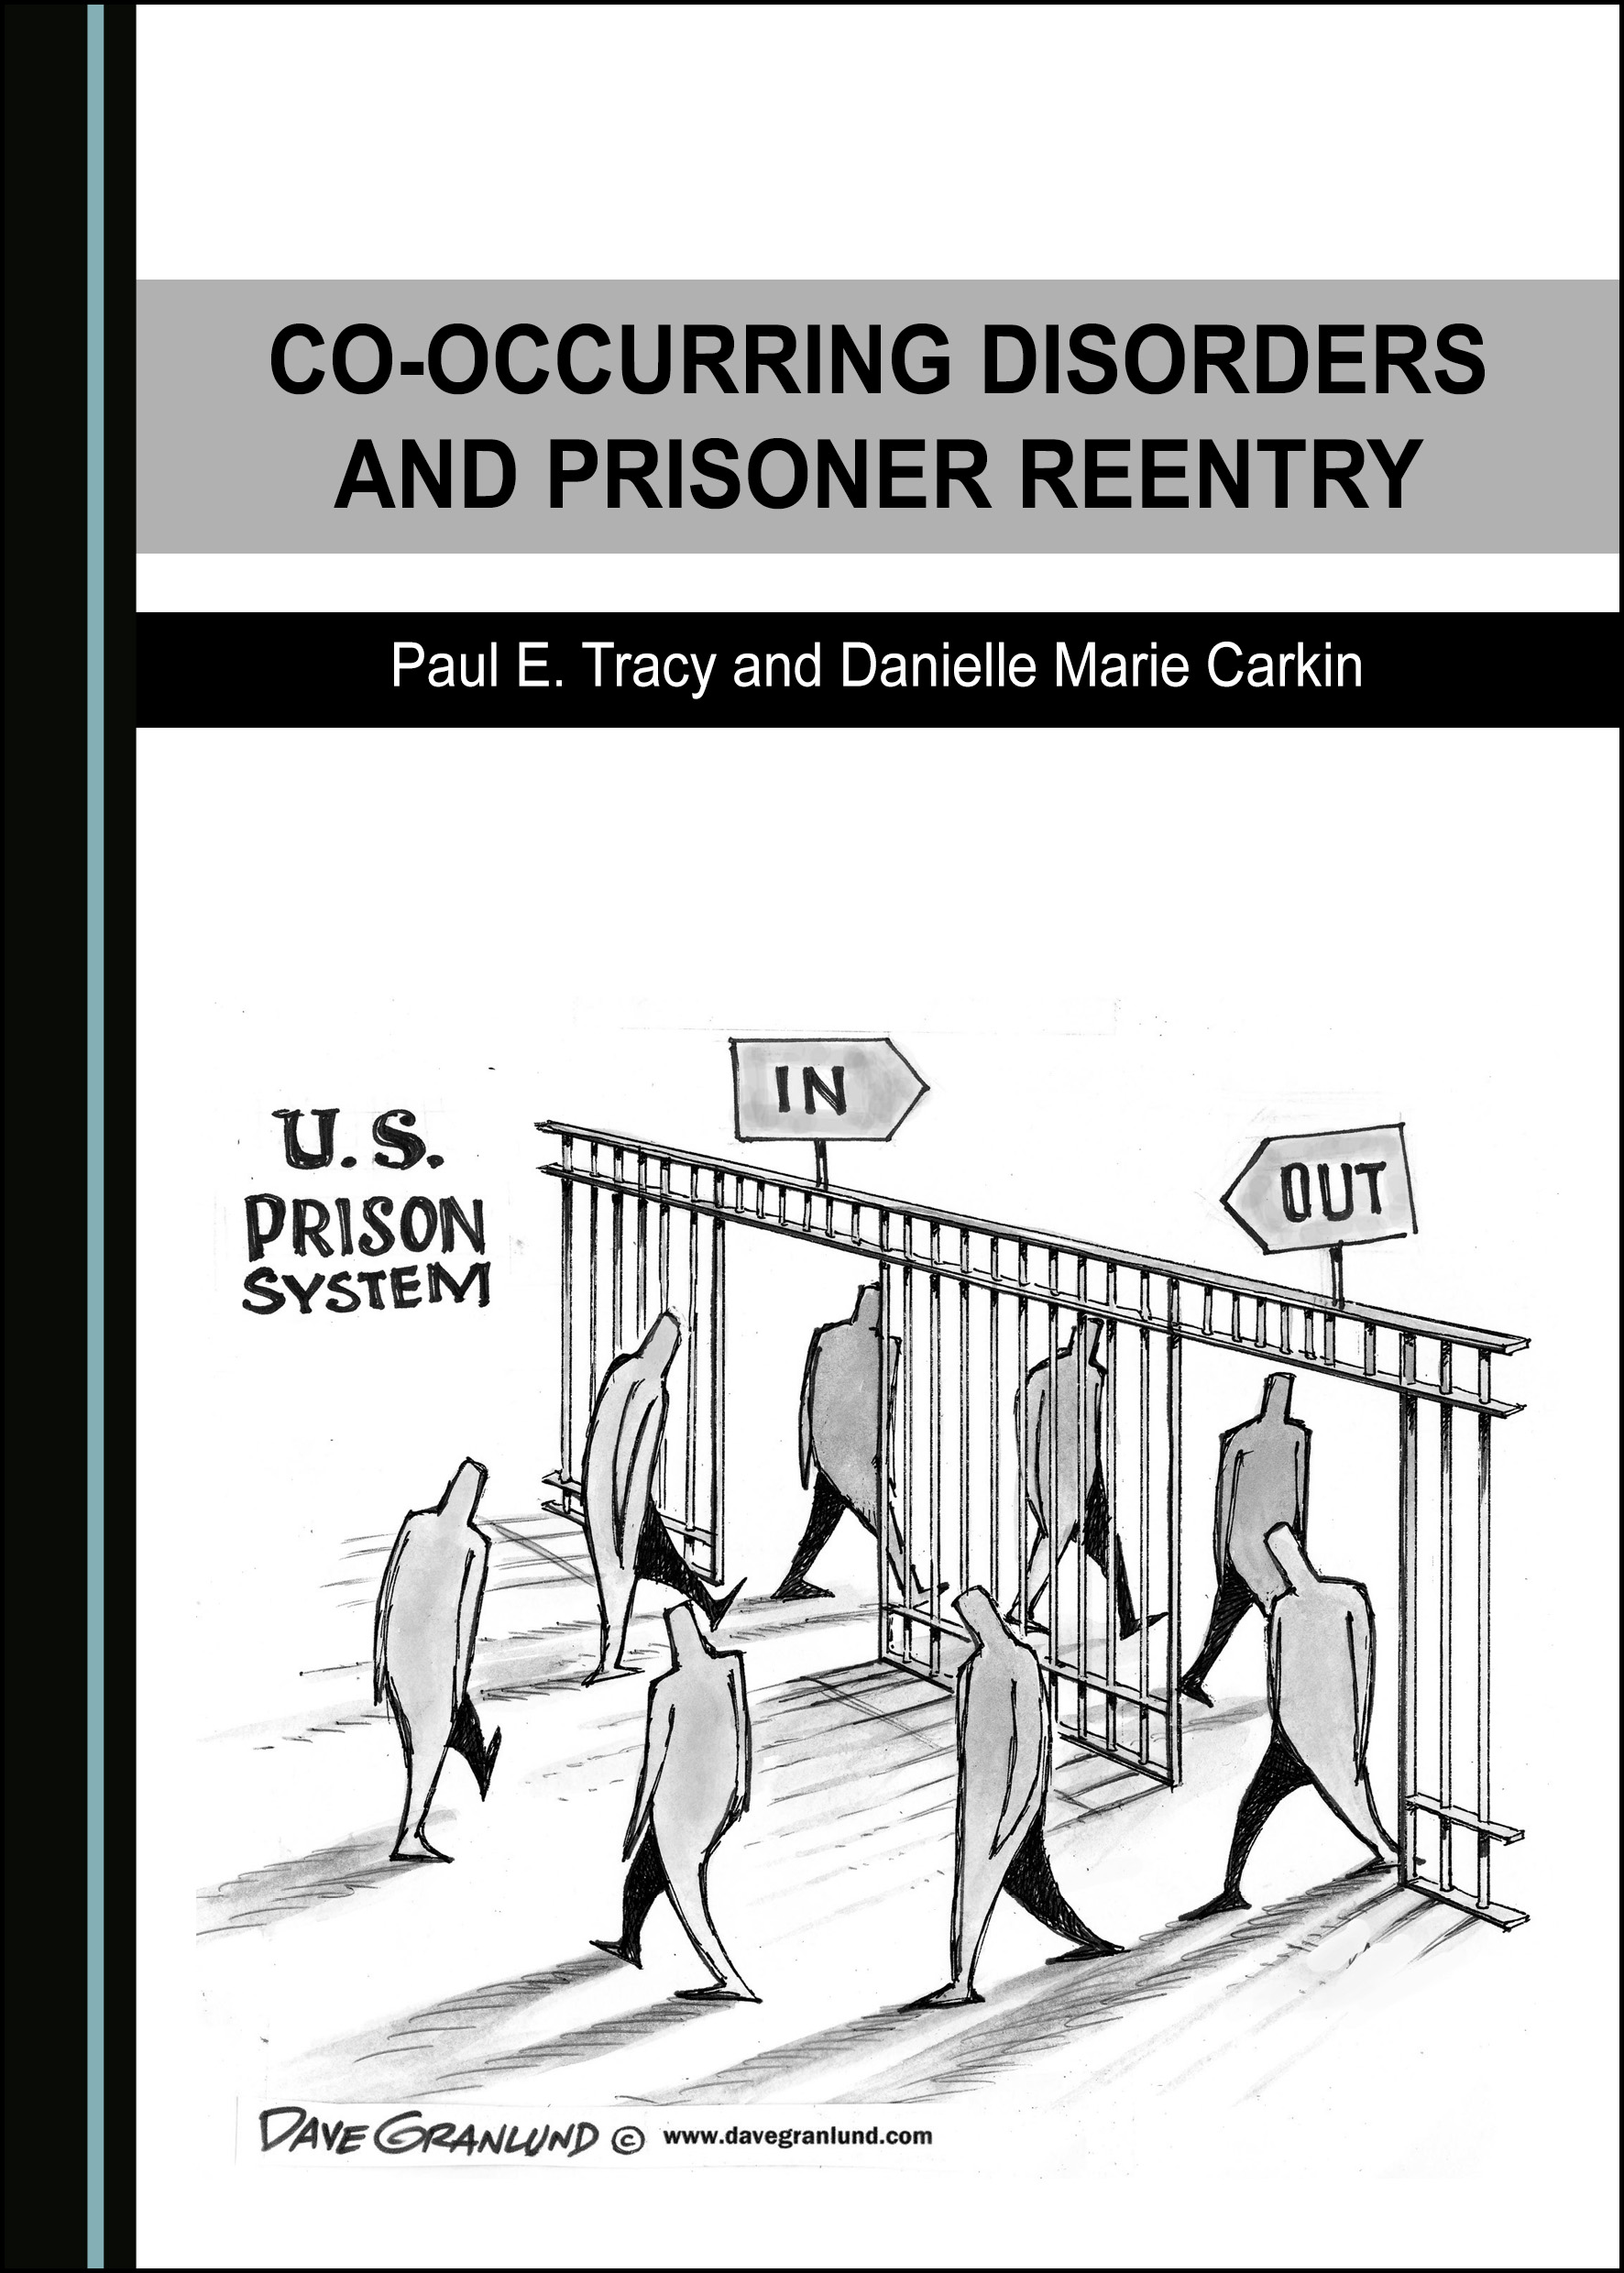 Co-Occurring Disorders and Prisoner Reentry